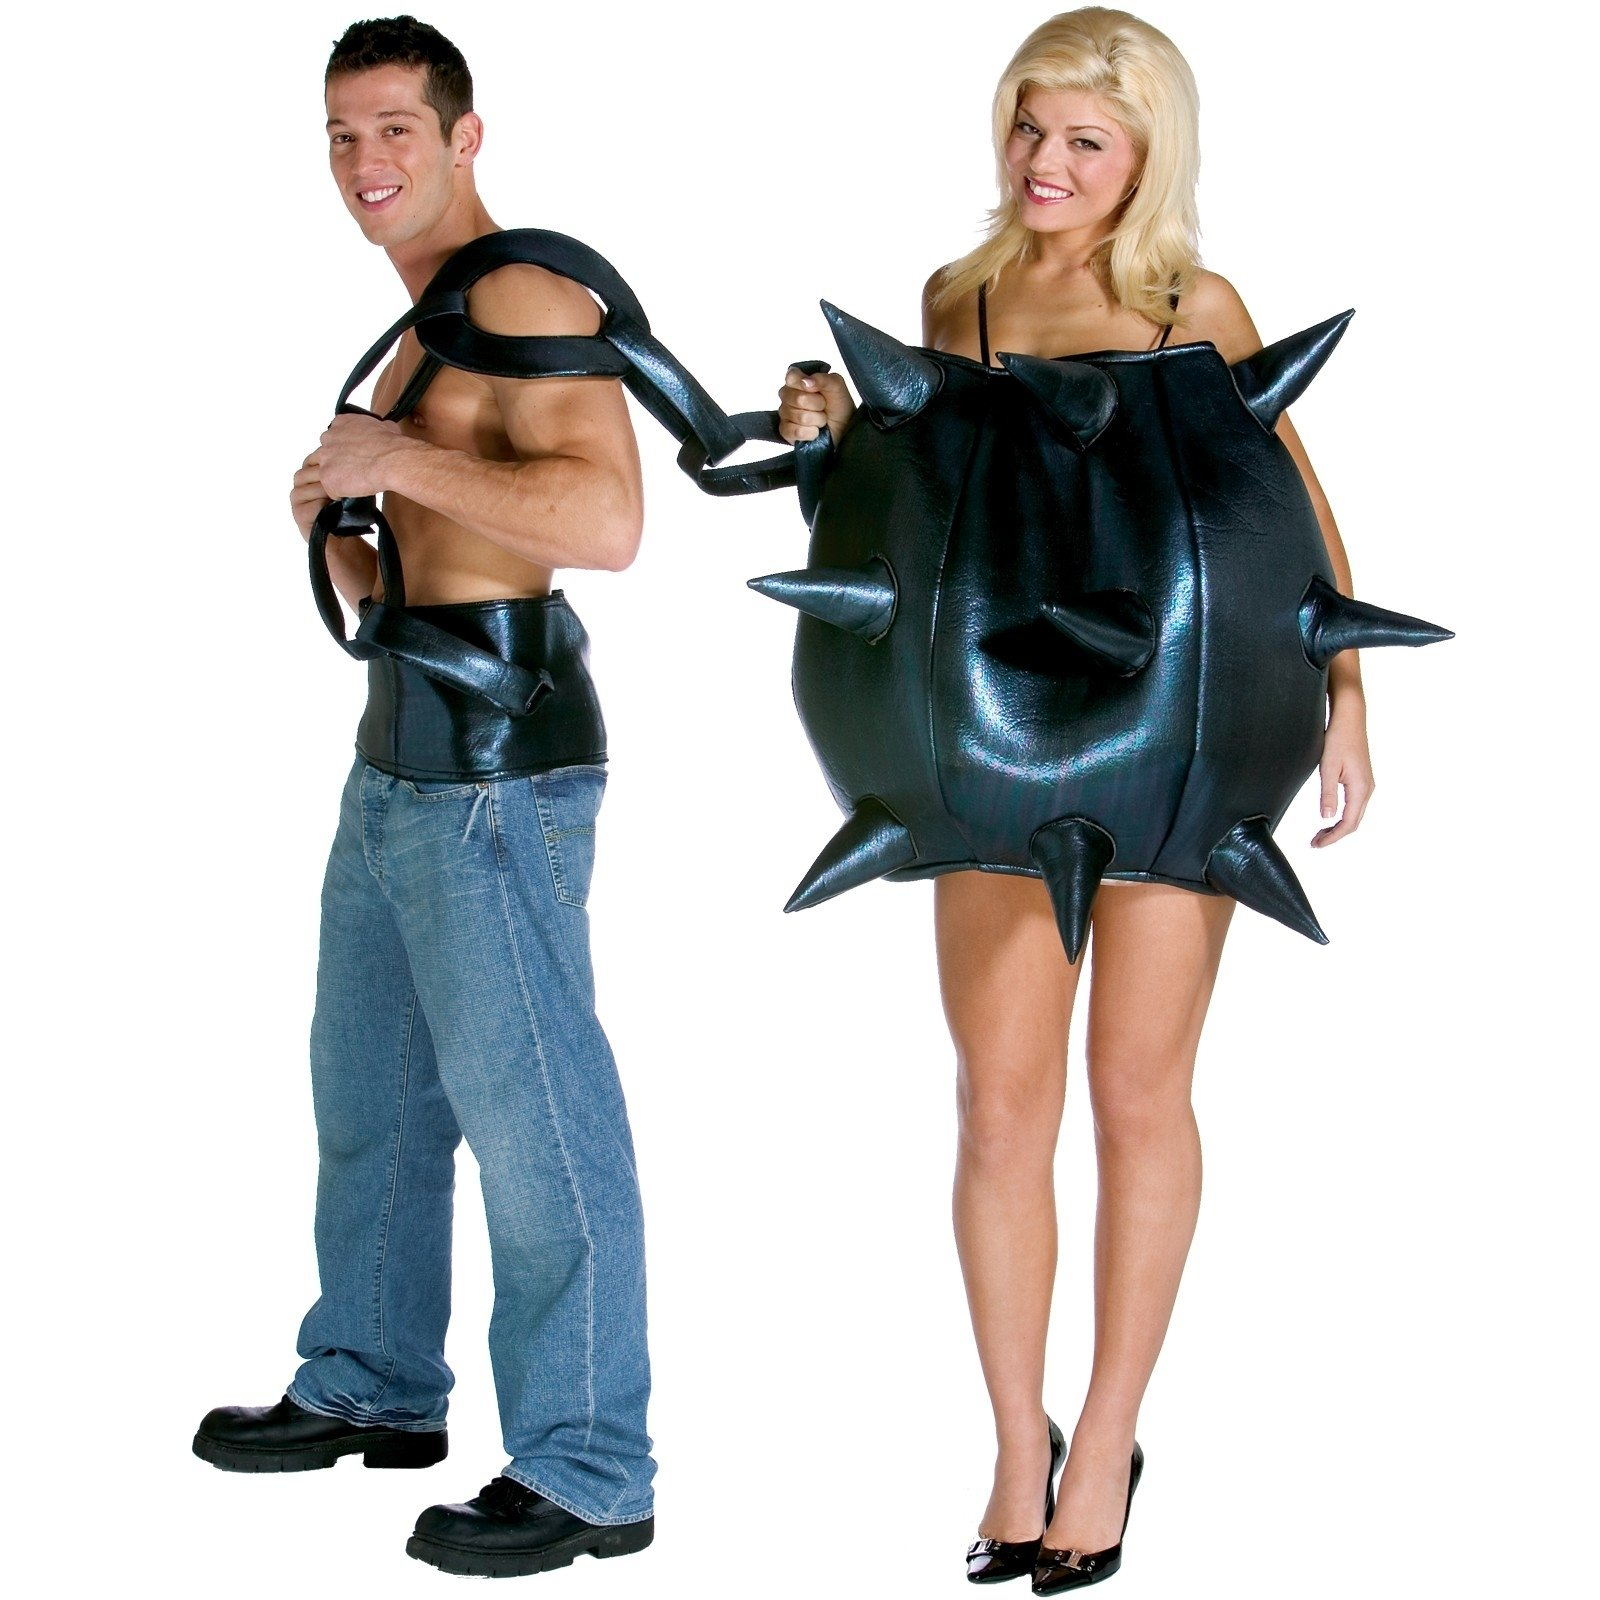 10 Most Popular Funny Couples Halloween Costume Ideas ball and chain couples costumes halloween couples costumes 1 2021